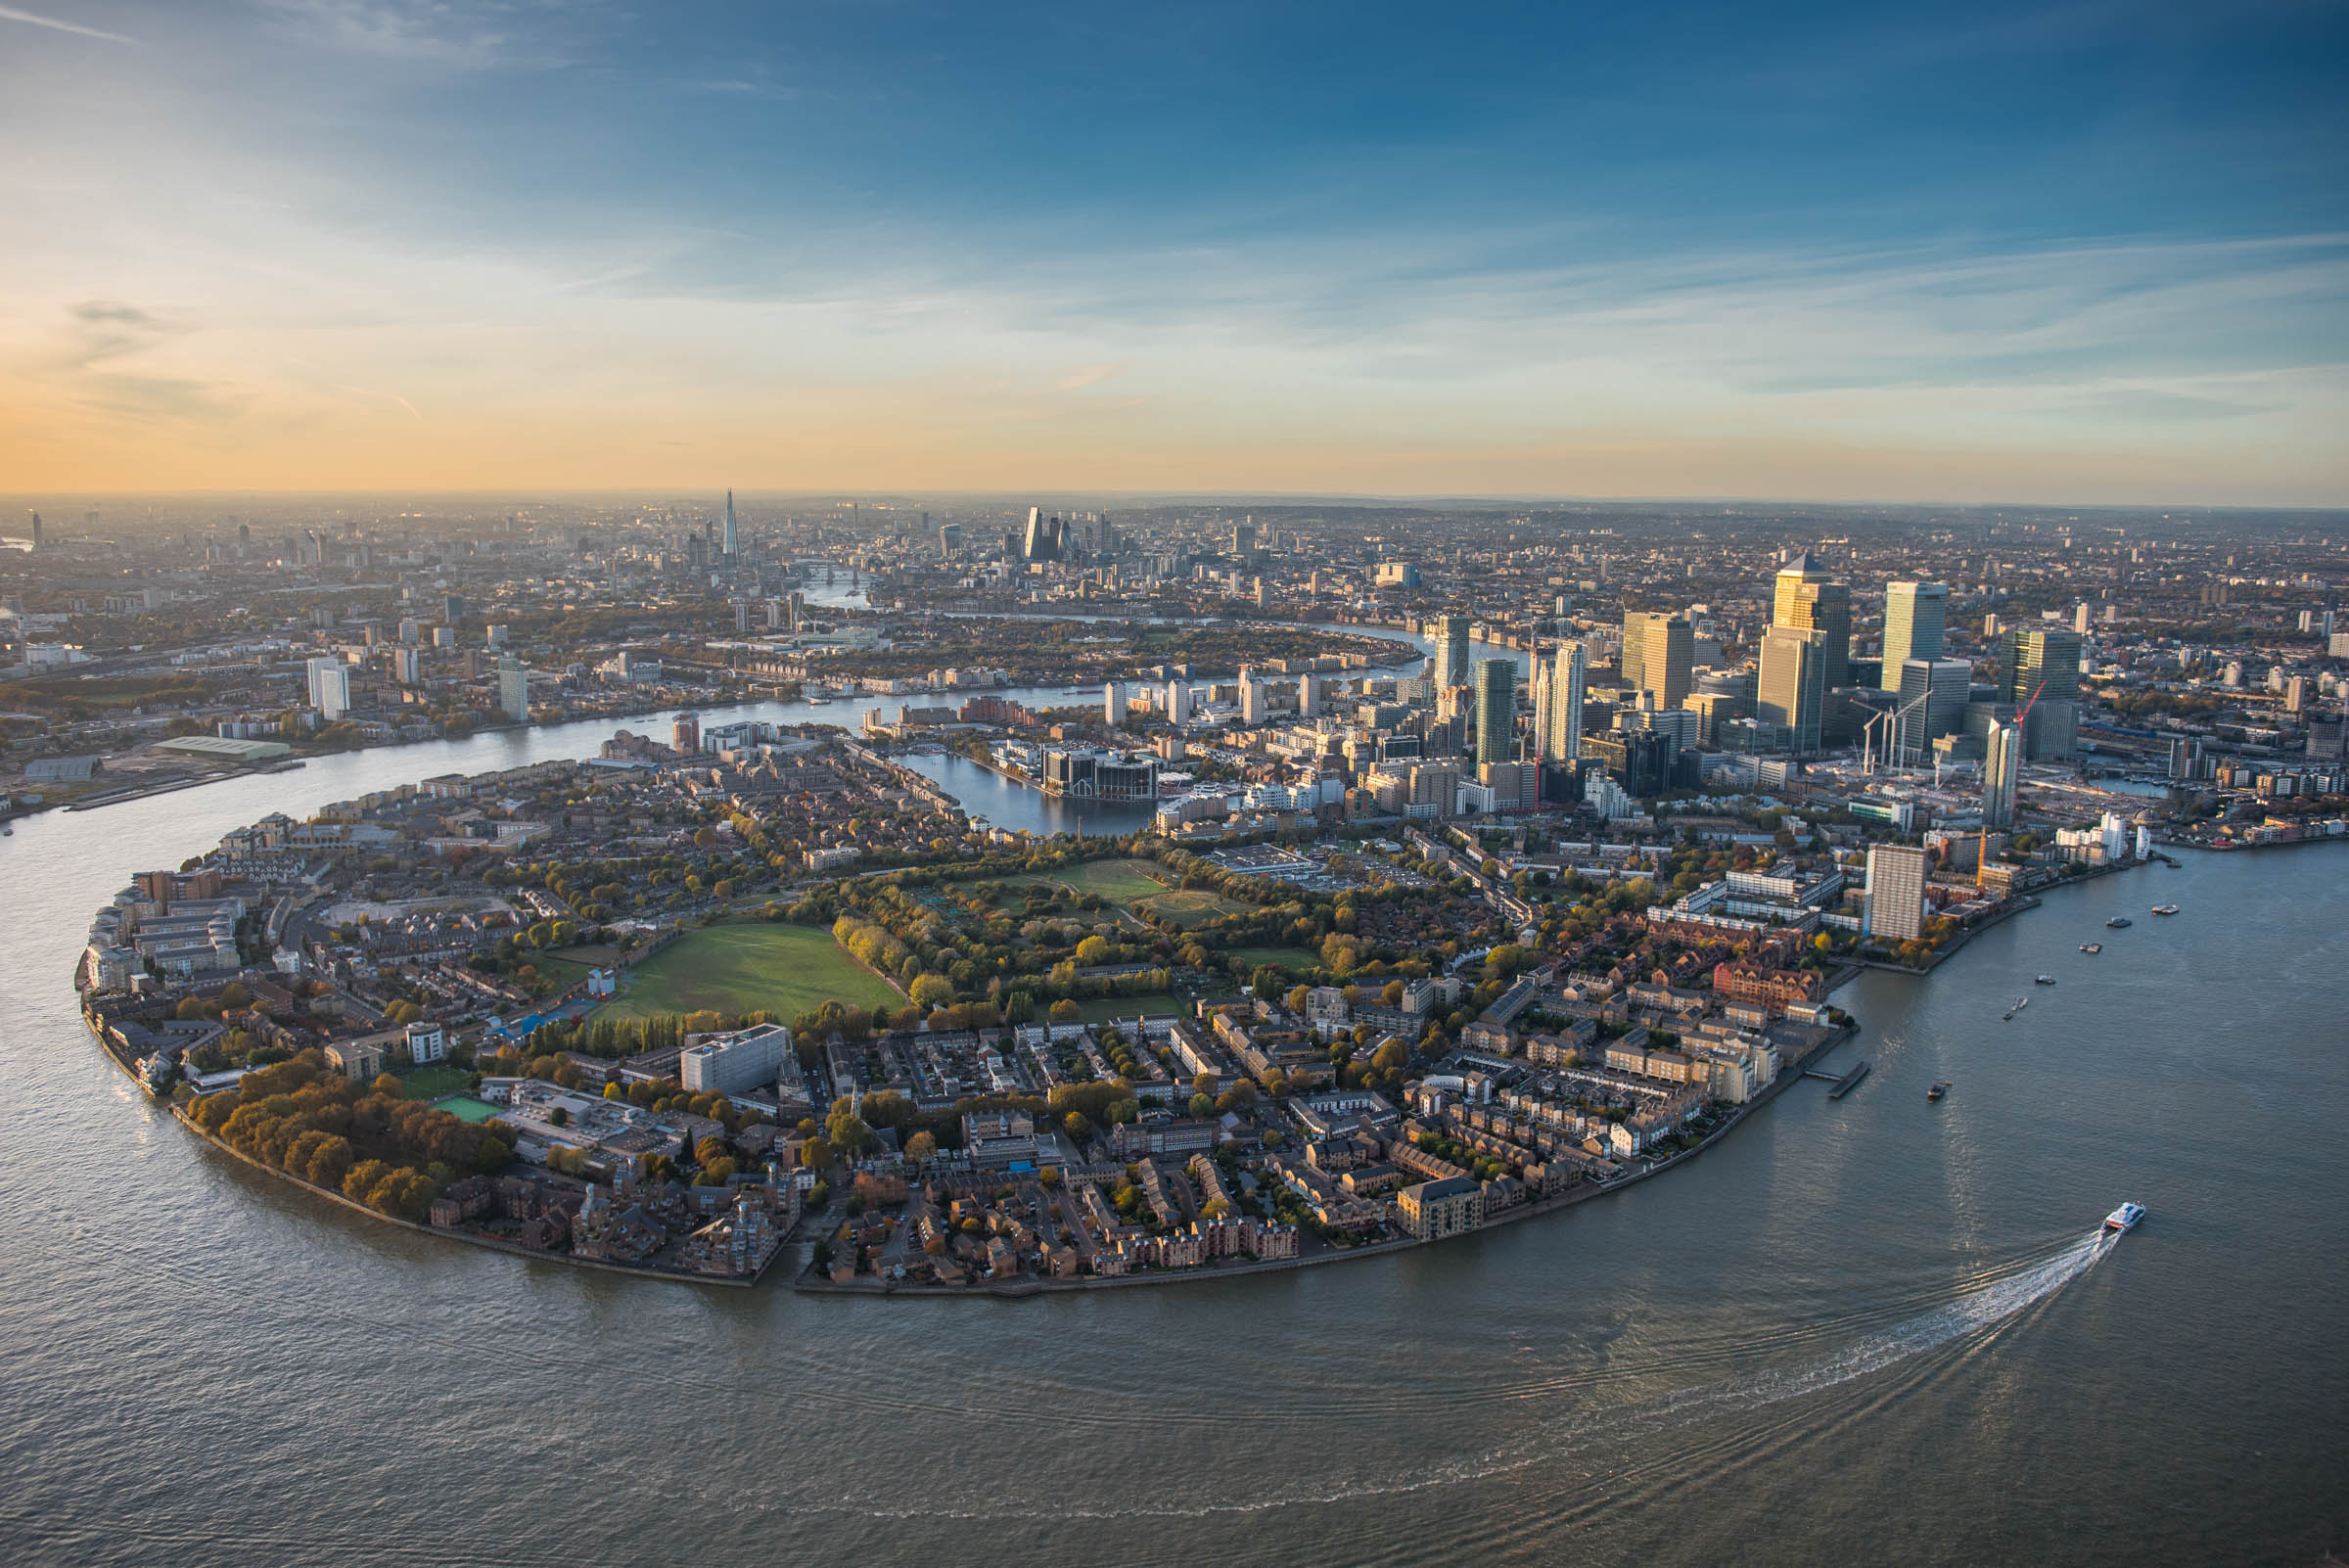 Isle of Dogs, Canary Wharf, London aerial view